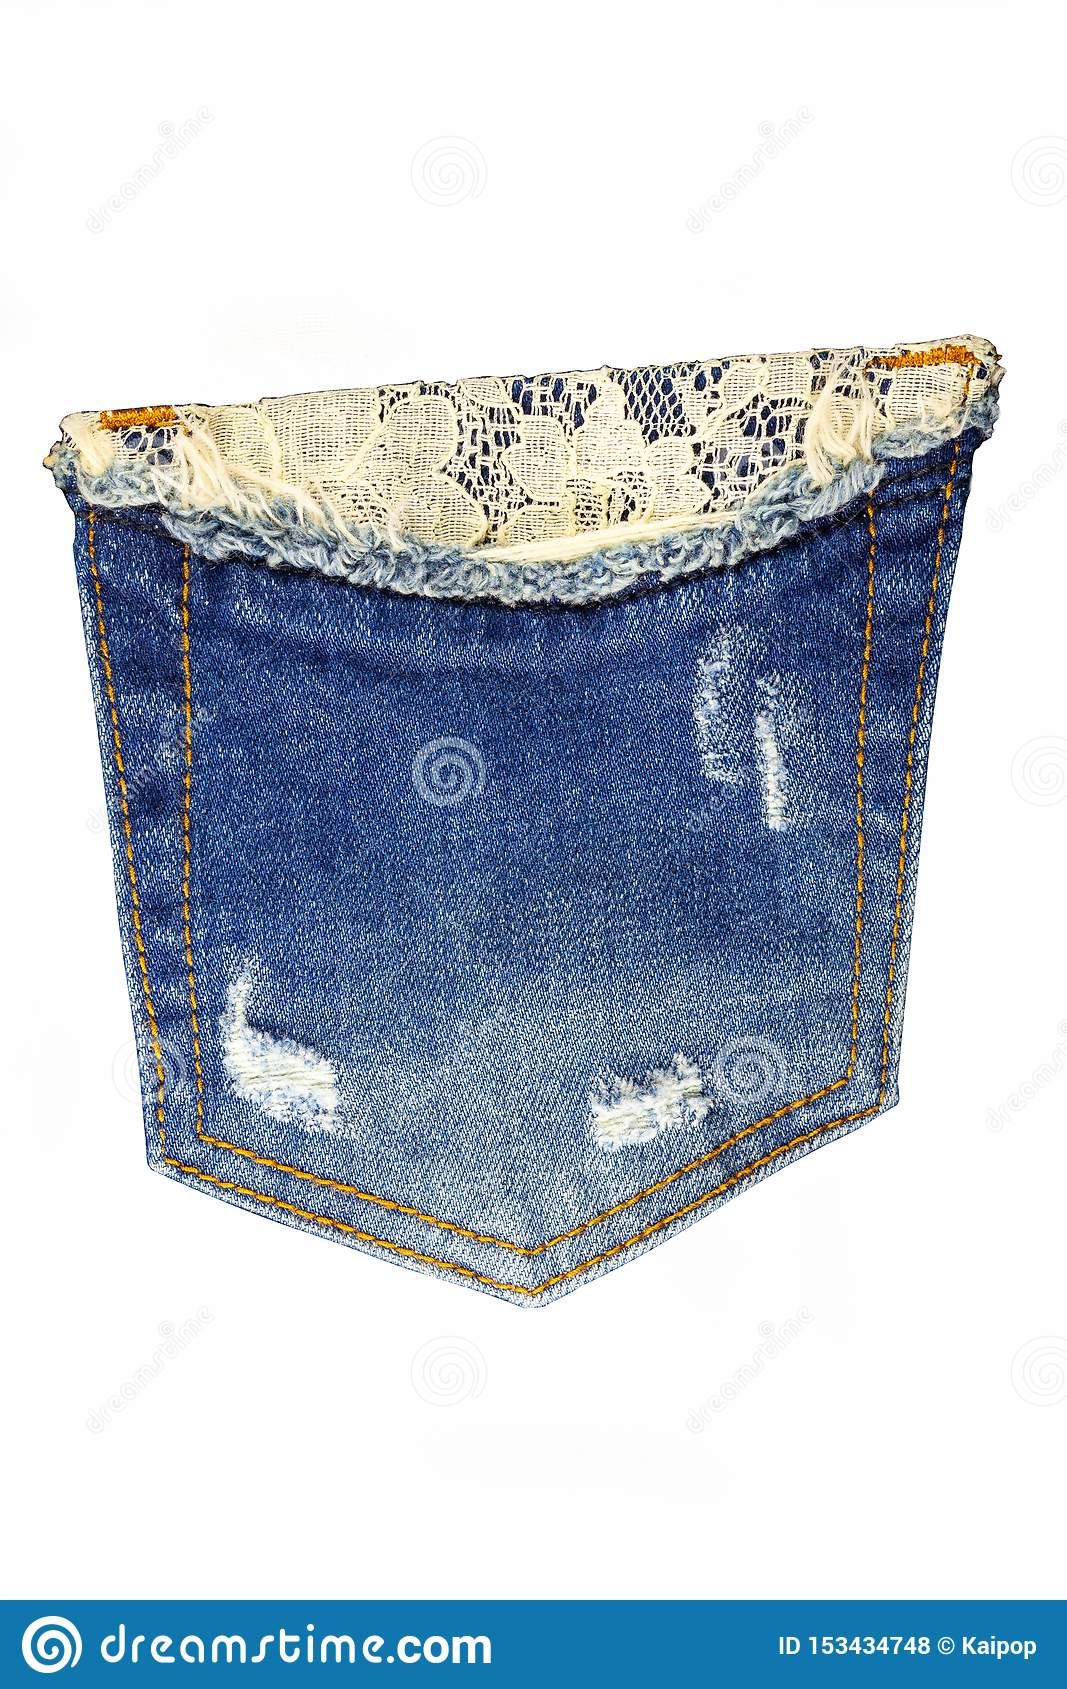 Pocket jeans on a white background